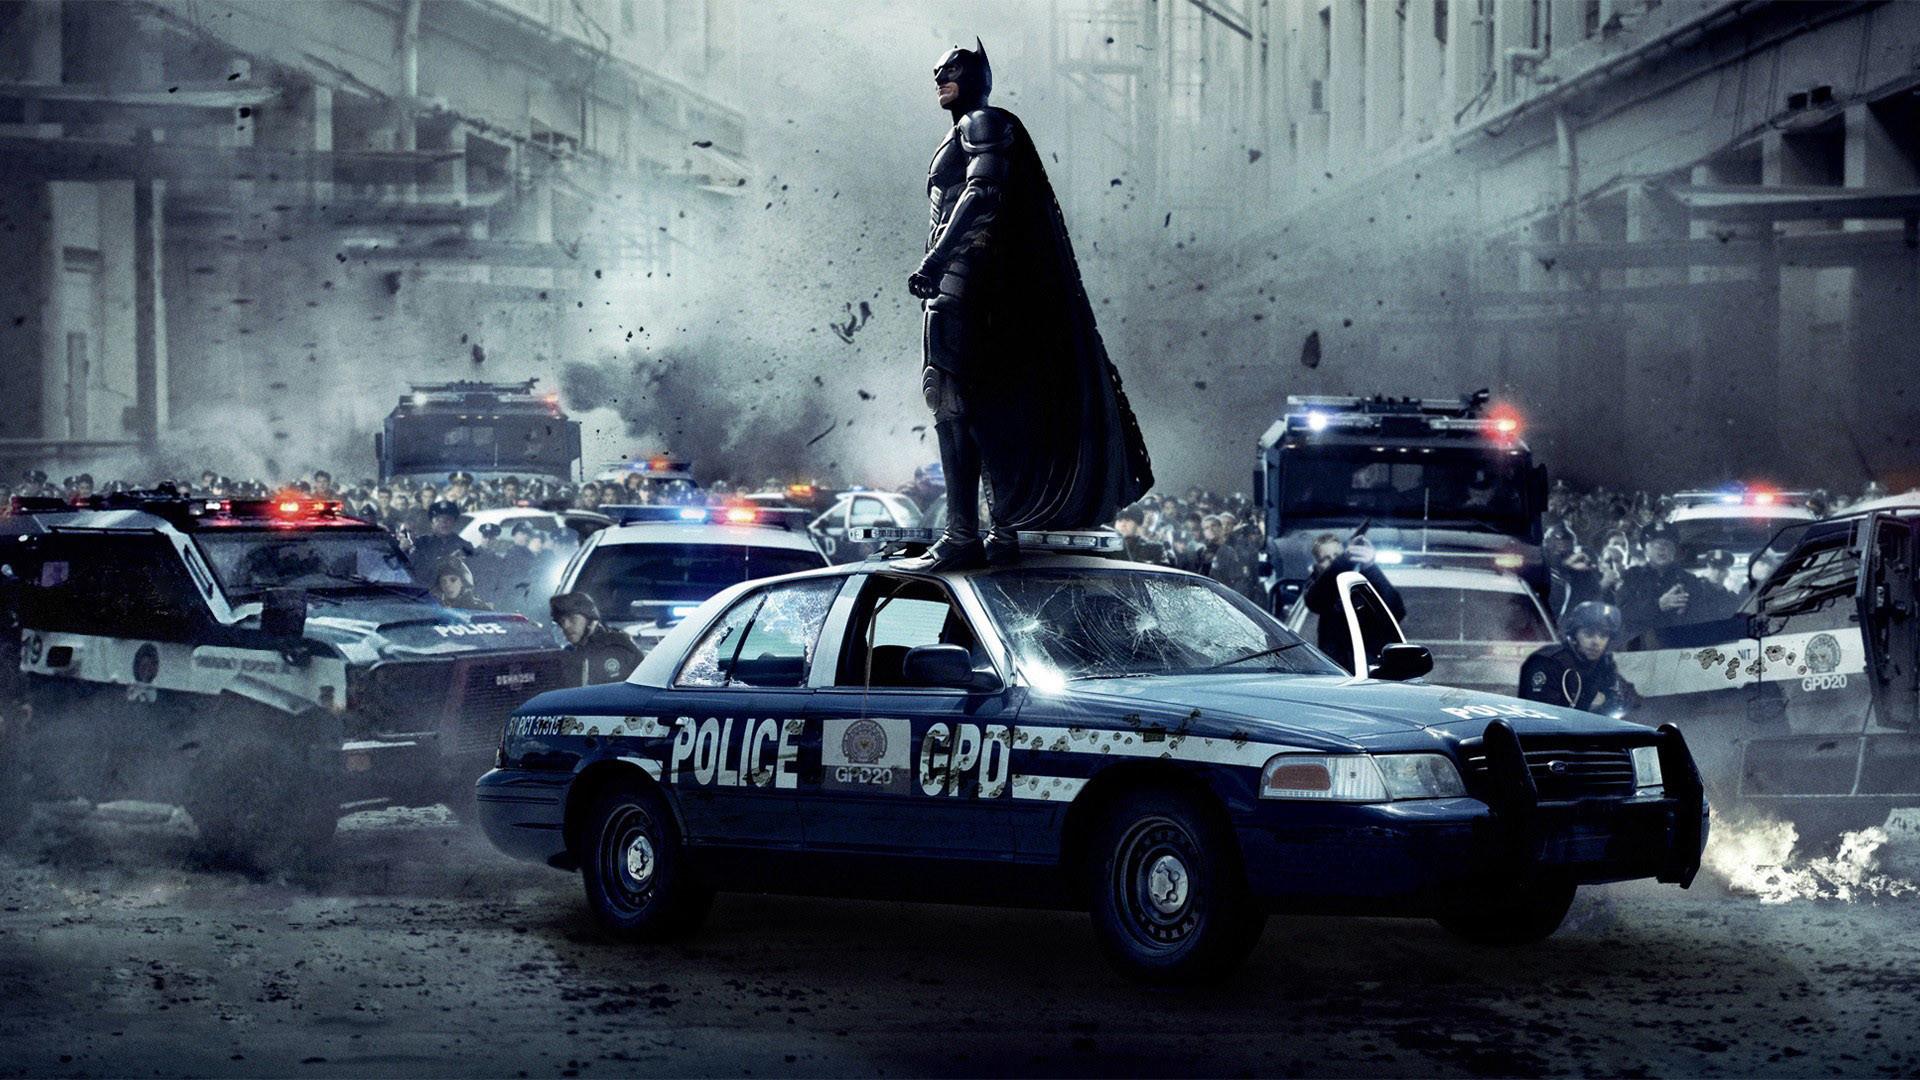 Law Enforcement Wallpaper Backgrounds Police, heroes, background